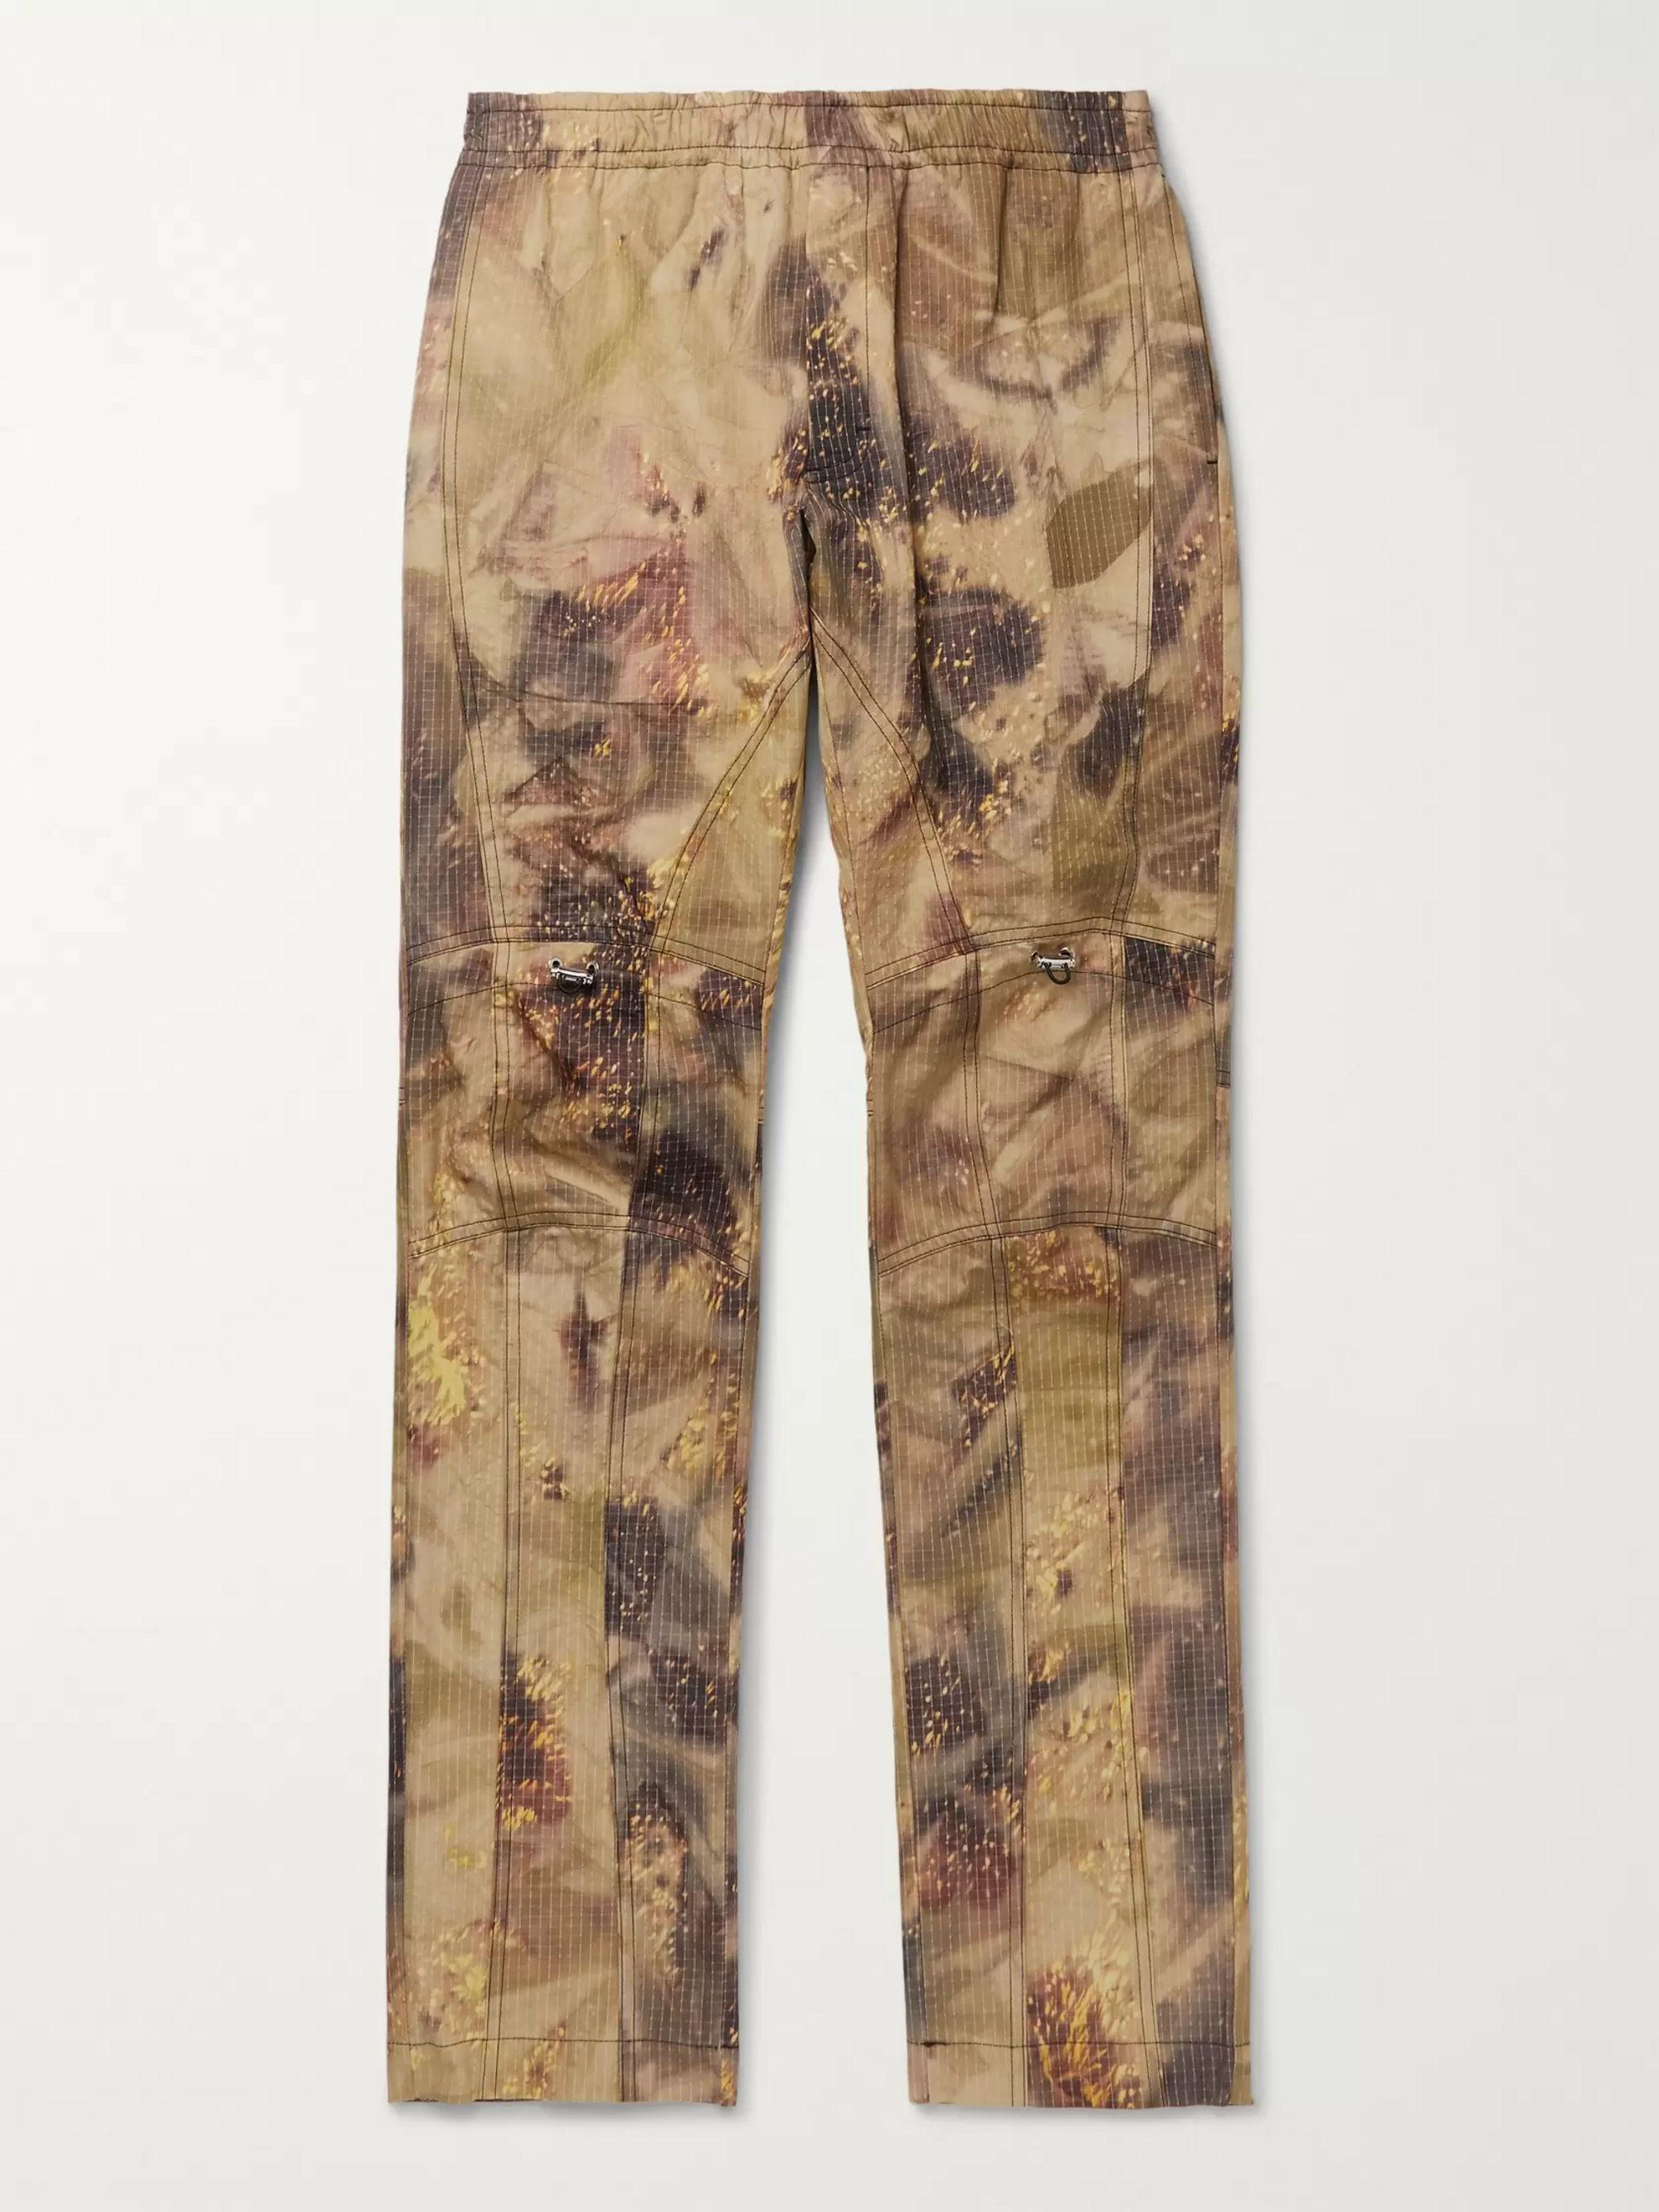 Slim Fit Tapered Camouflage Print Cotton Blend Ripstop Trousers by Mr Porter